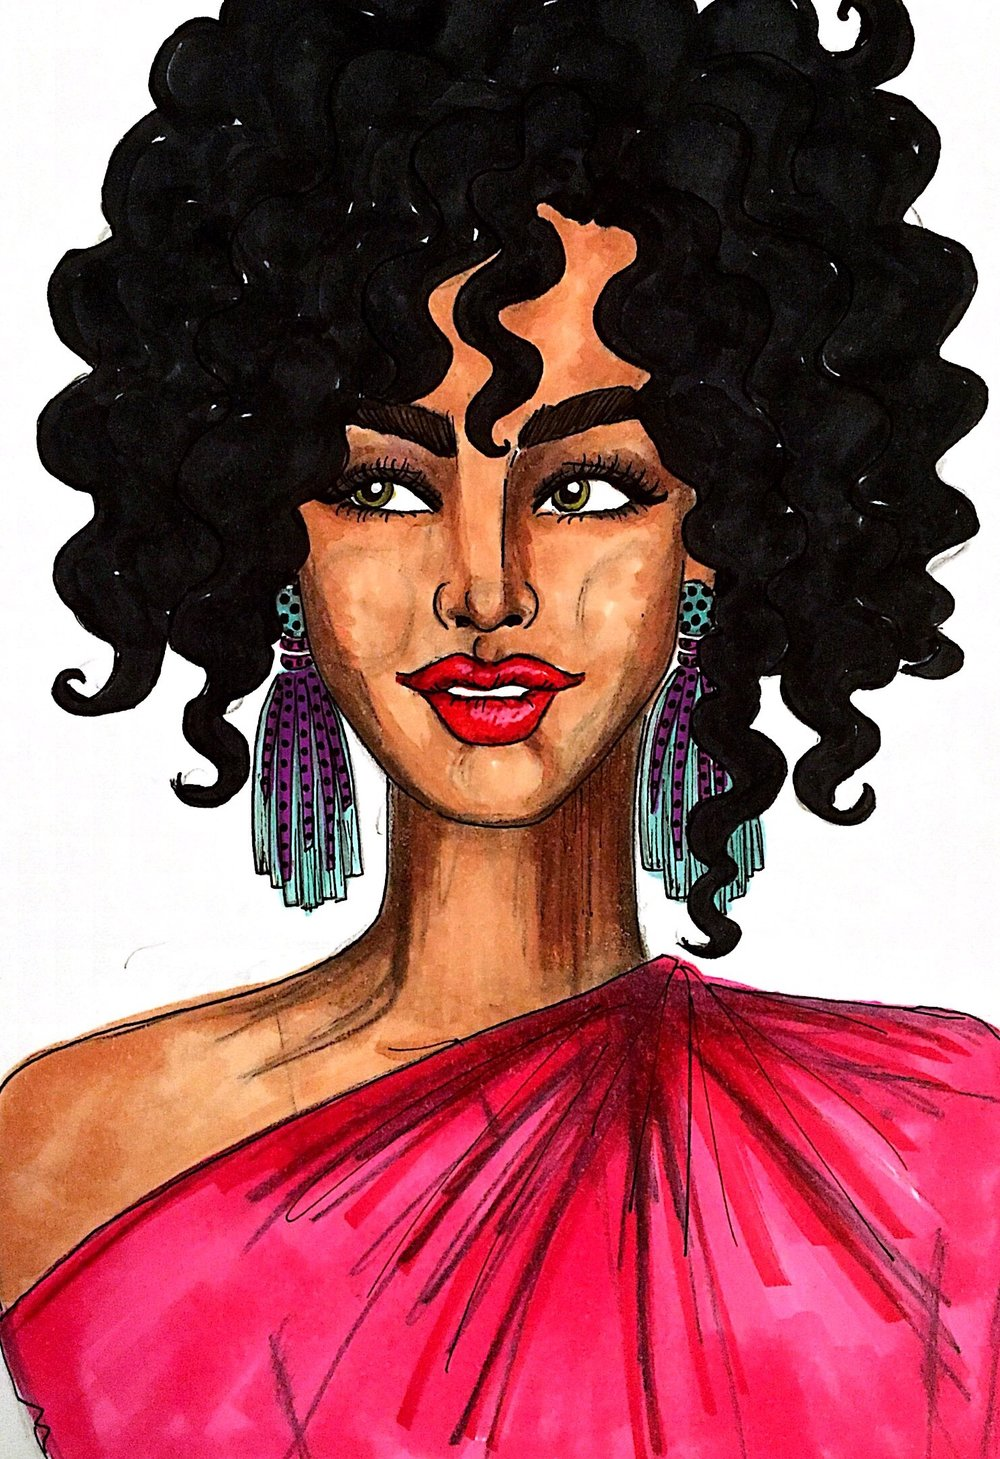 FASHION & beauty ILLUSTRATION - One of my favorite things about living in New York City: I am never without inspiration for my drawings. There are the women at power lunches on Madison Avenue, not a hair out of place, their linen suits crisp, perfect. The beautiful woman on her way to a Saturday night date, having put great effort into looking effortless. The fashionistas navigating the Meatpacking District's cobblestone streets in their five-inch Laboutins. The trio brunching in a Williamsburg cafe, handmade leather bags  and cozy knits hanging from the backs of their walnut chairs. The wild-haired dancer running out from a last rehearsal, loose fabrics hanging beautifully on her long limbs. The bespectacled NYU student hiding out in a corner at Strand, tattered vintage denim jacket lying next to her stack of books. The blushing bride tossing her bouquet outside City Hall. Everywhere I look, there is something, someone.